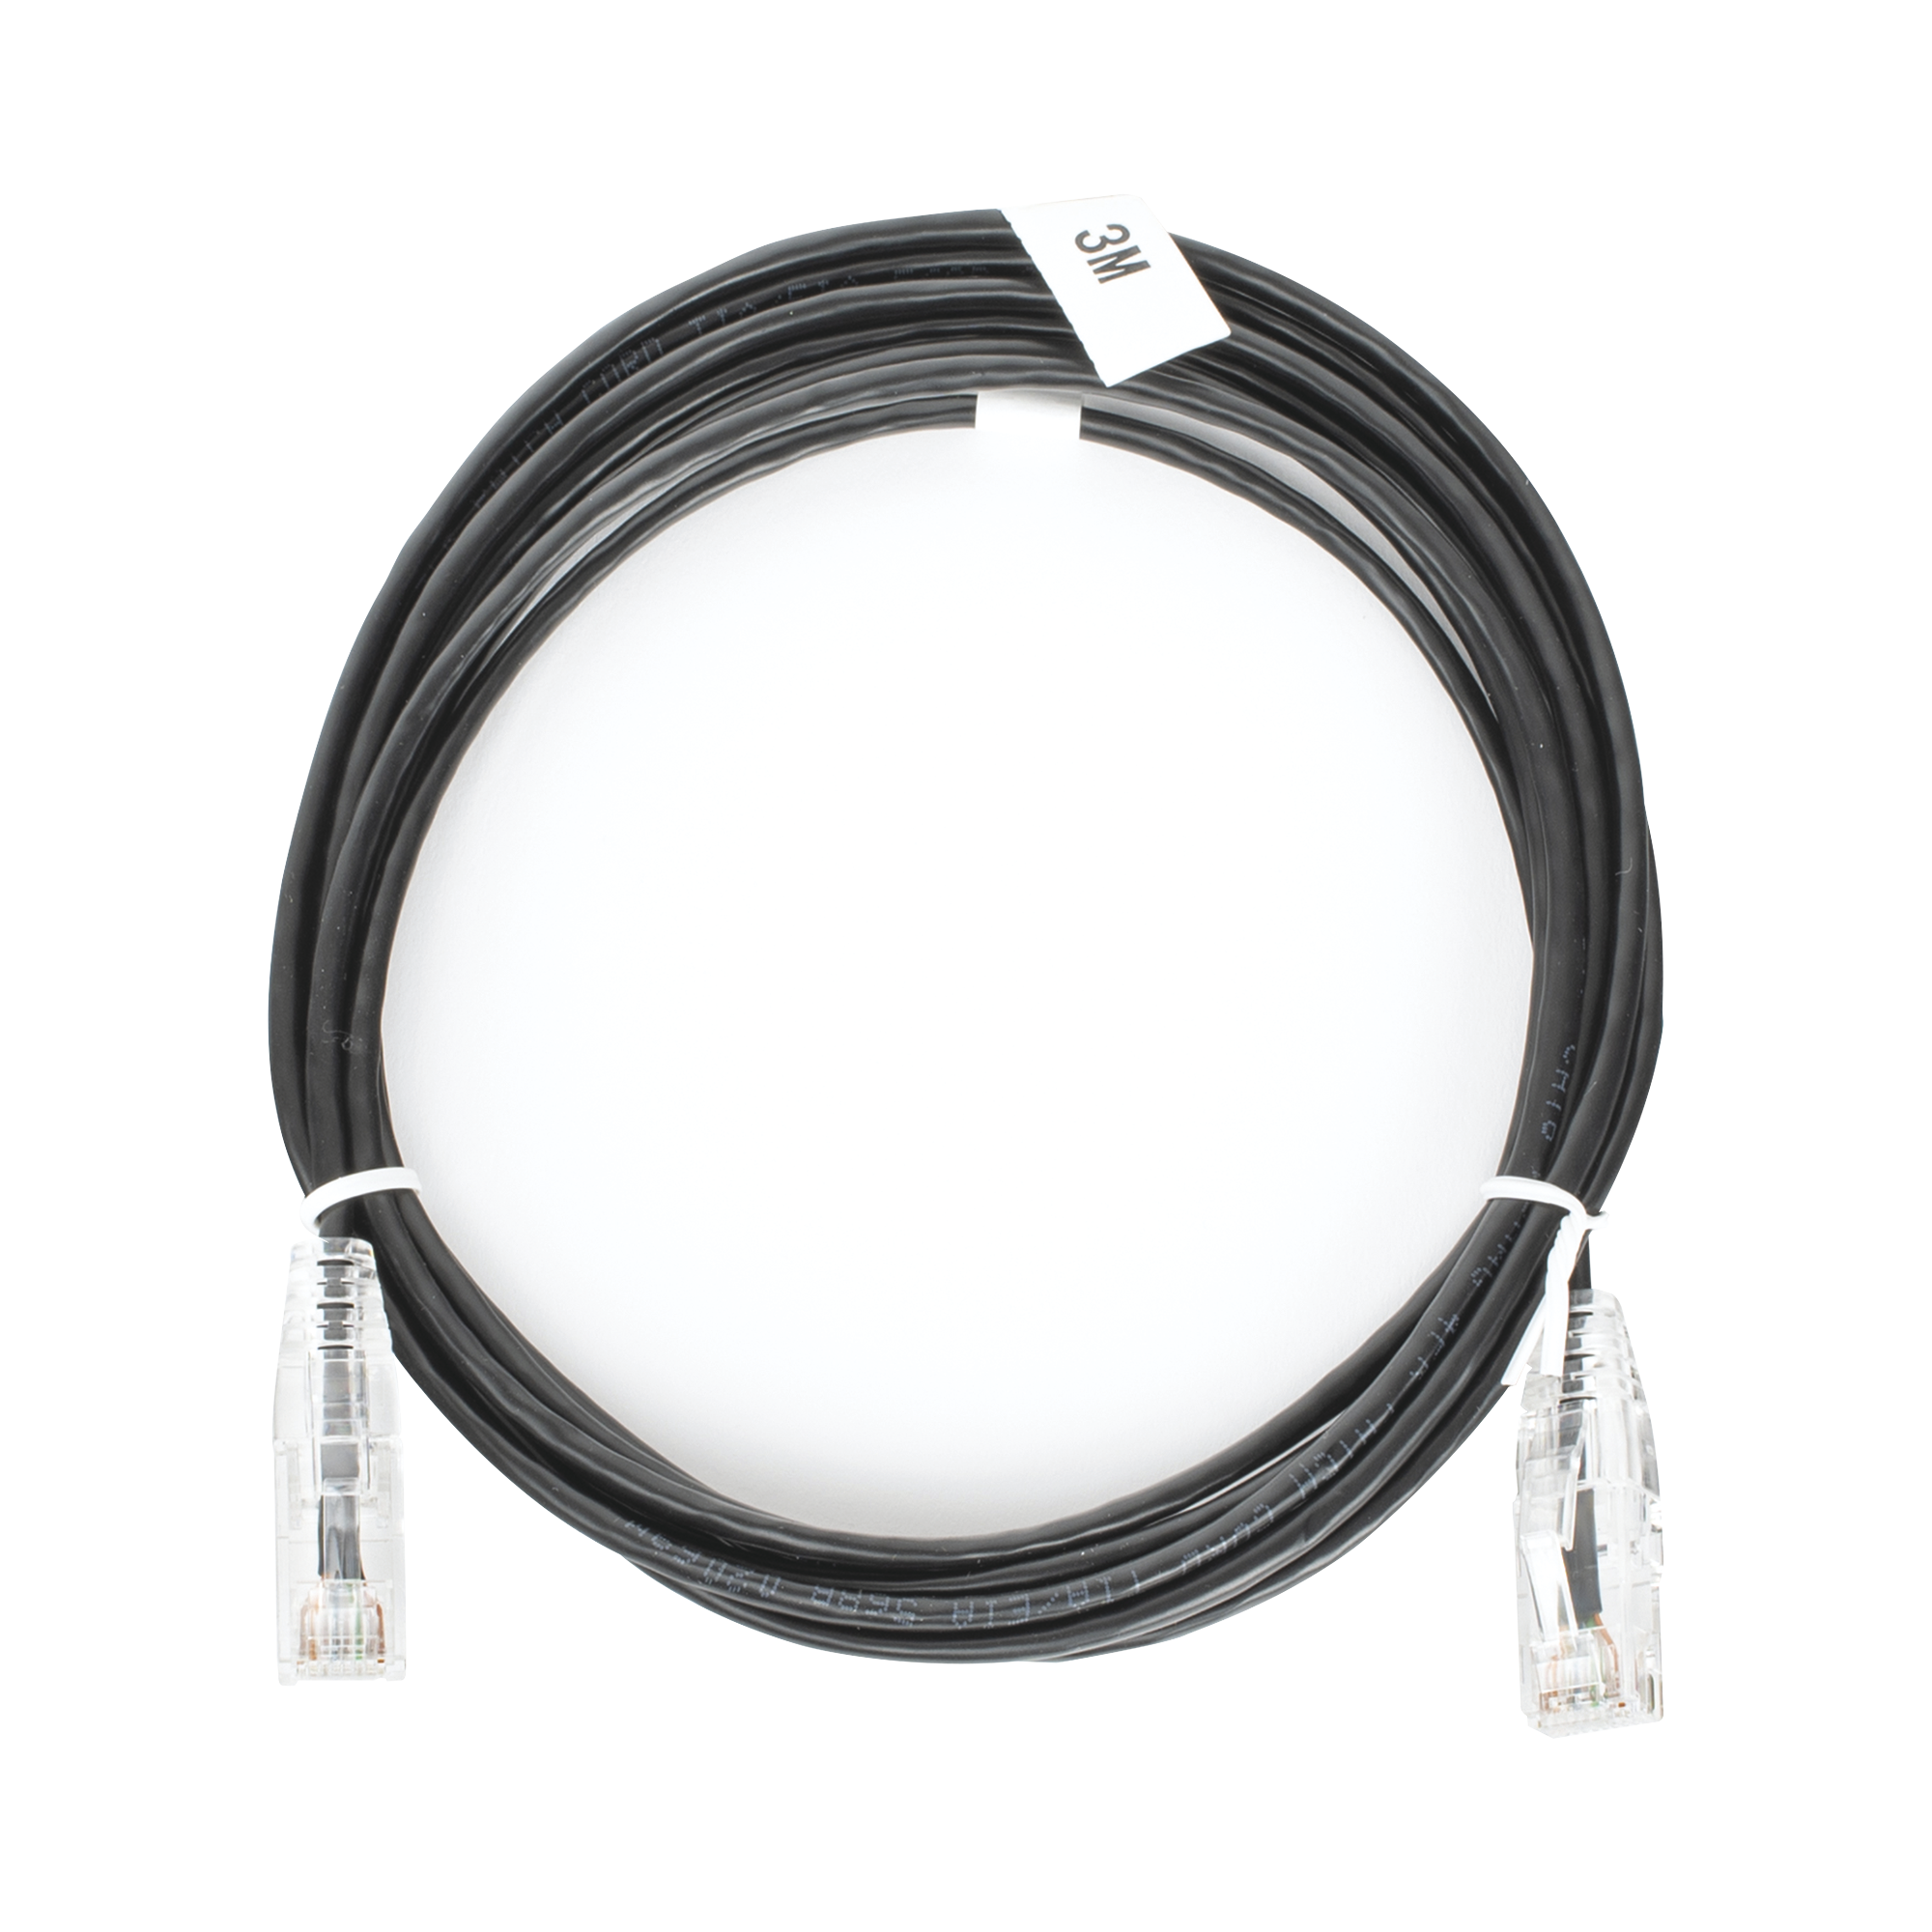 Cable de Parcheo Slim UTP Cat6 - 3 m Negro Diámetro Reducido (28 AWG)